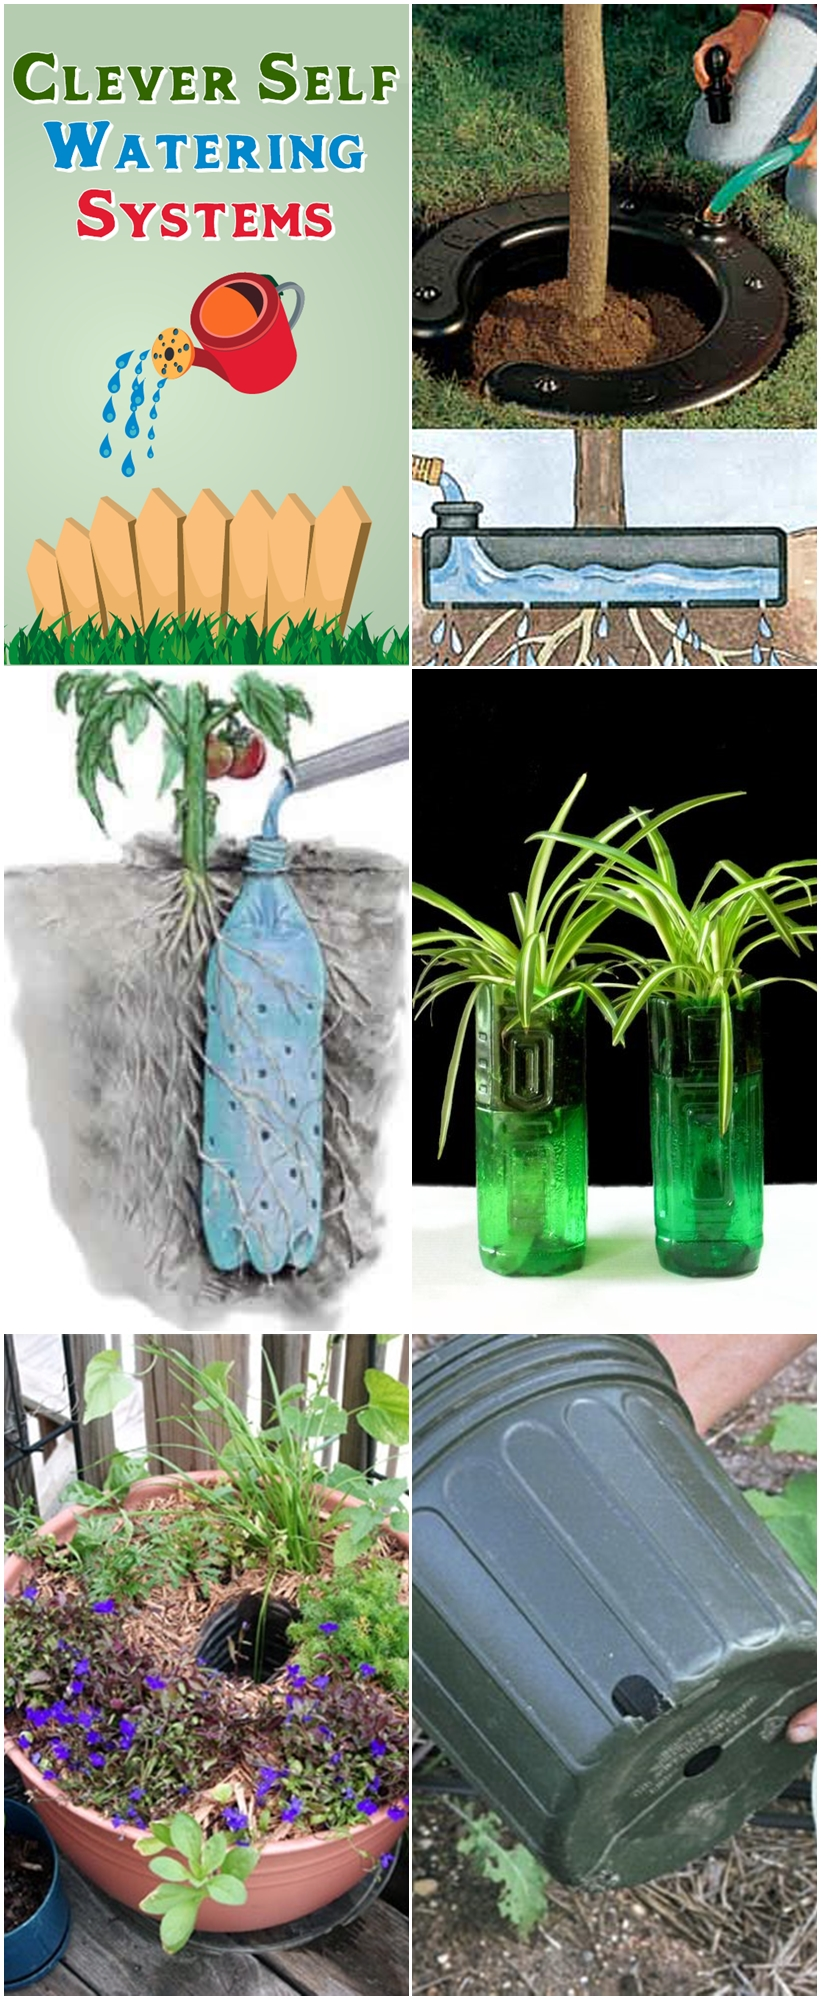 Clever Self Watering Systems